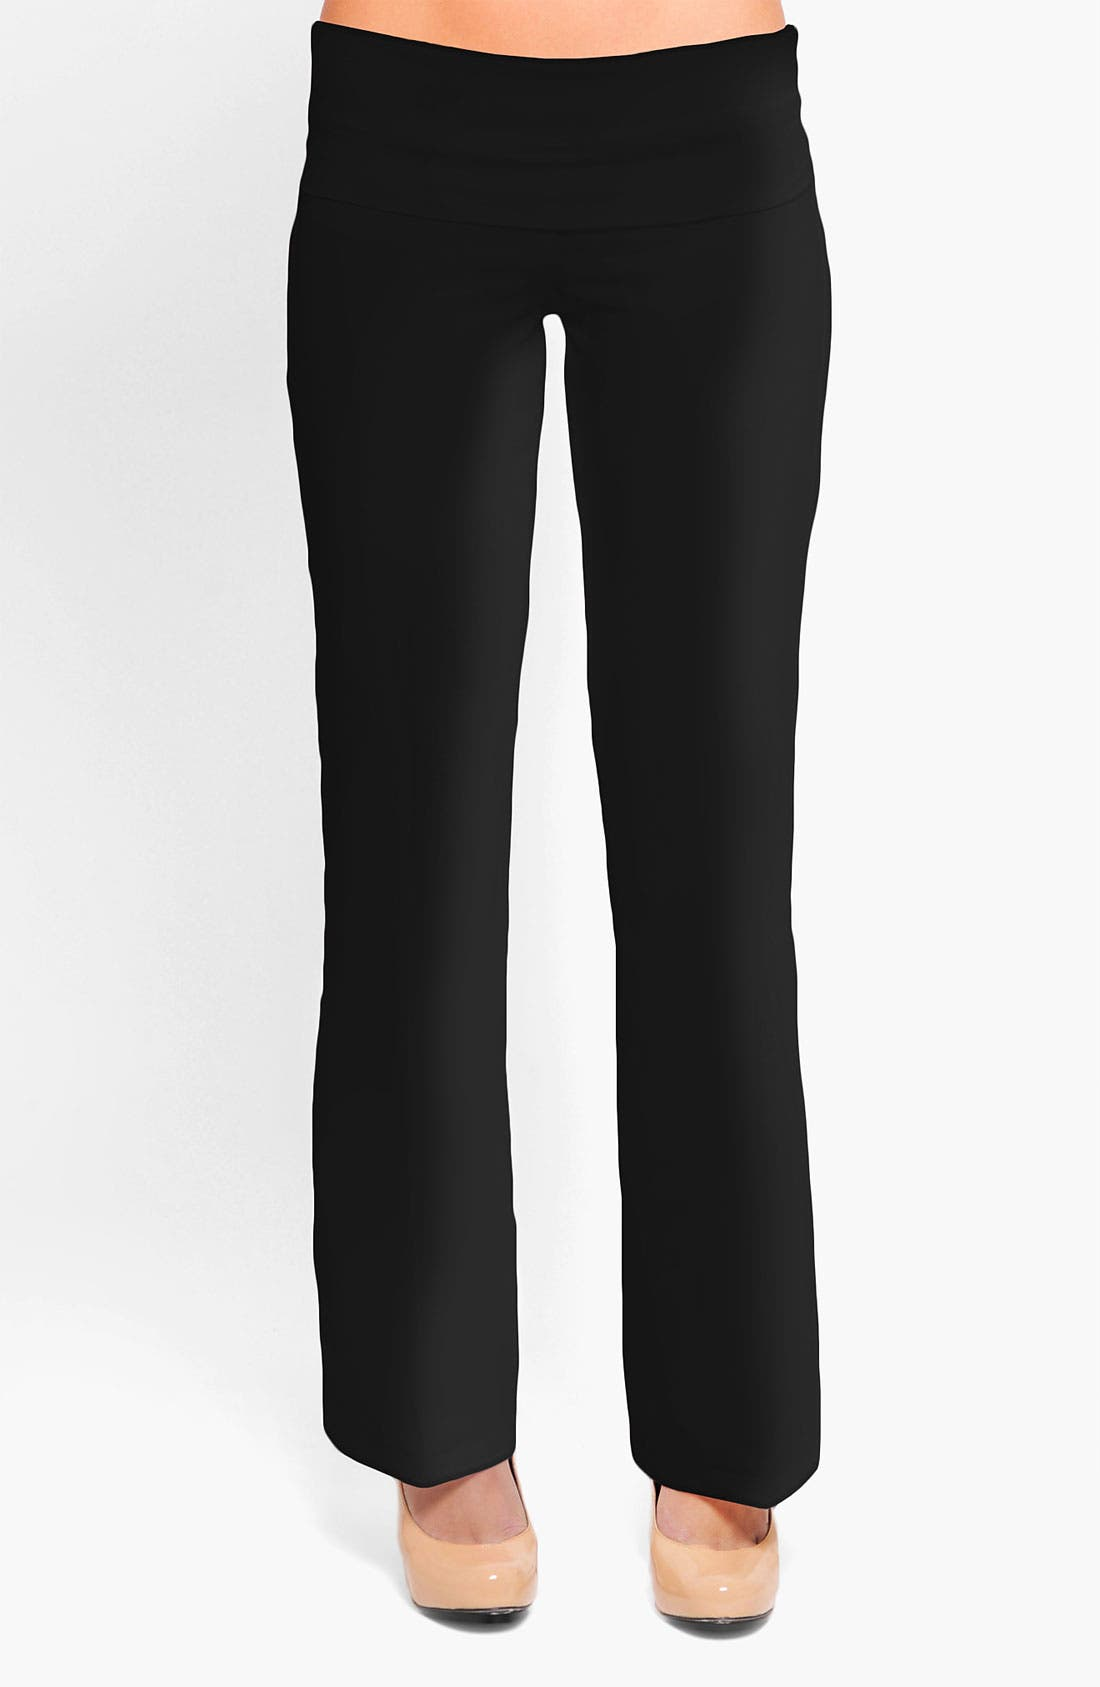 Alternate Image 1 Selected - Olian 'Kate' Maternity Straight Leg Woven Pants